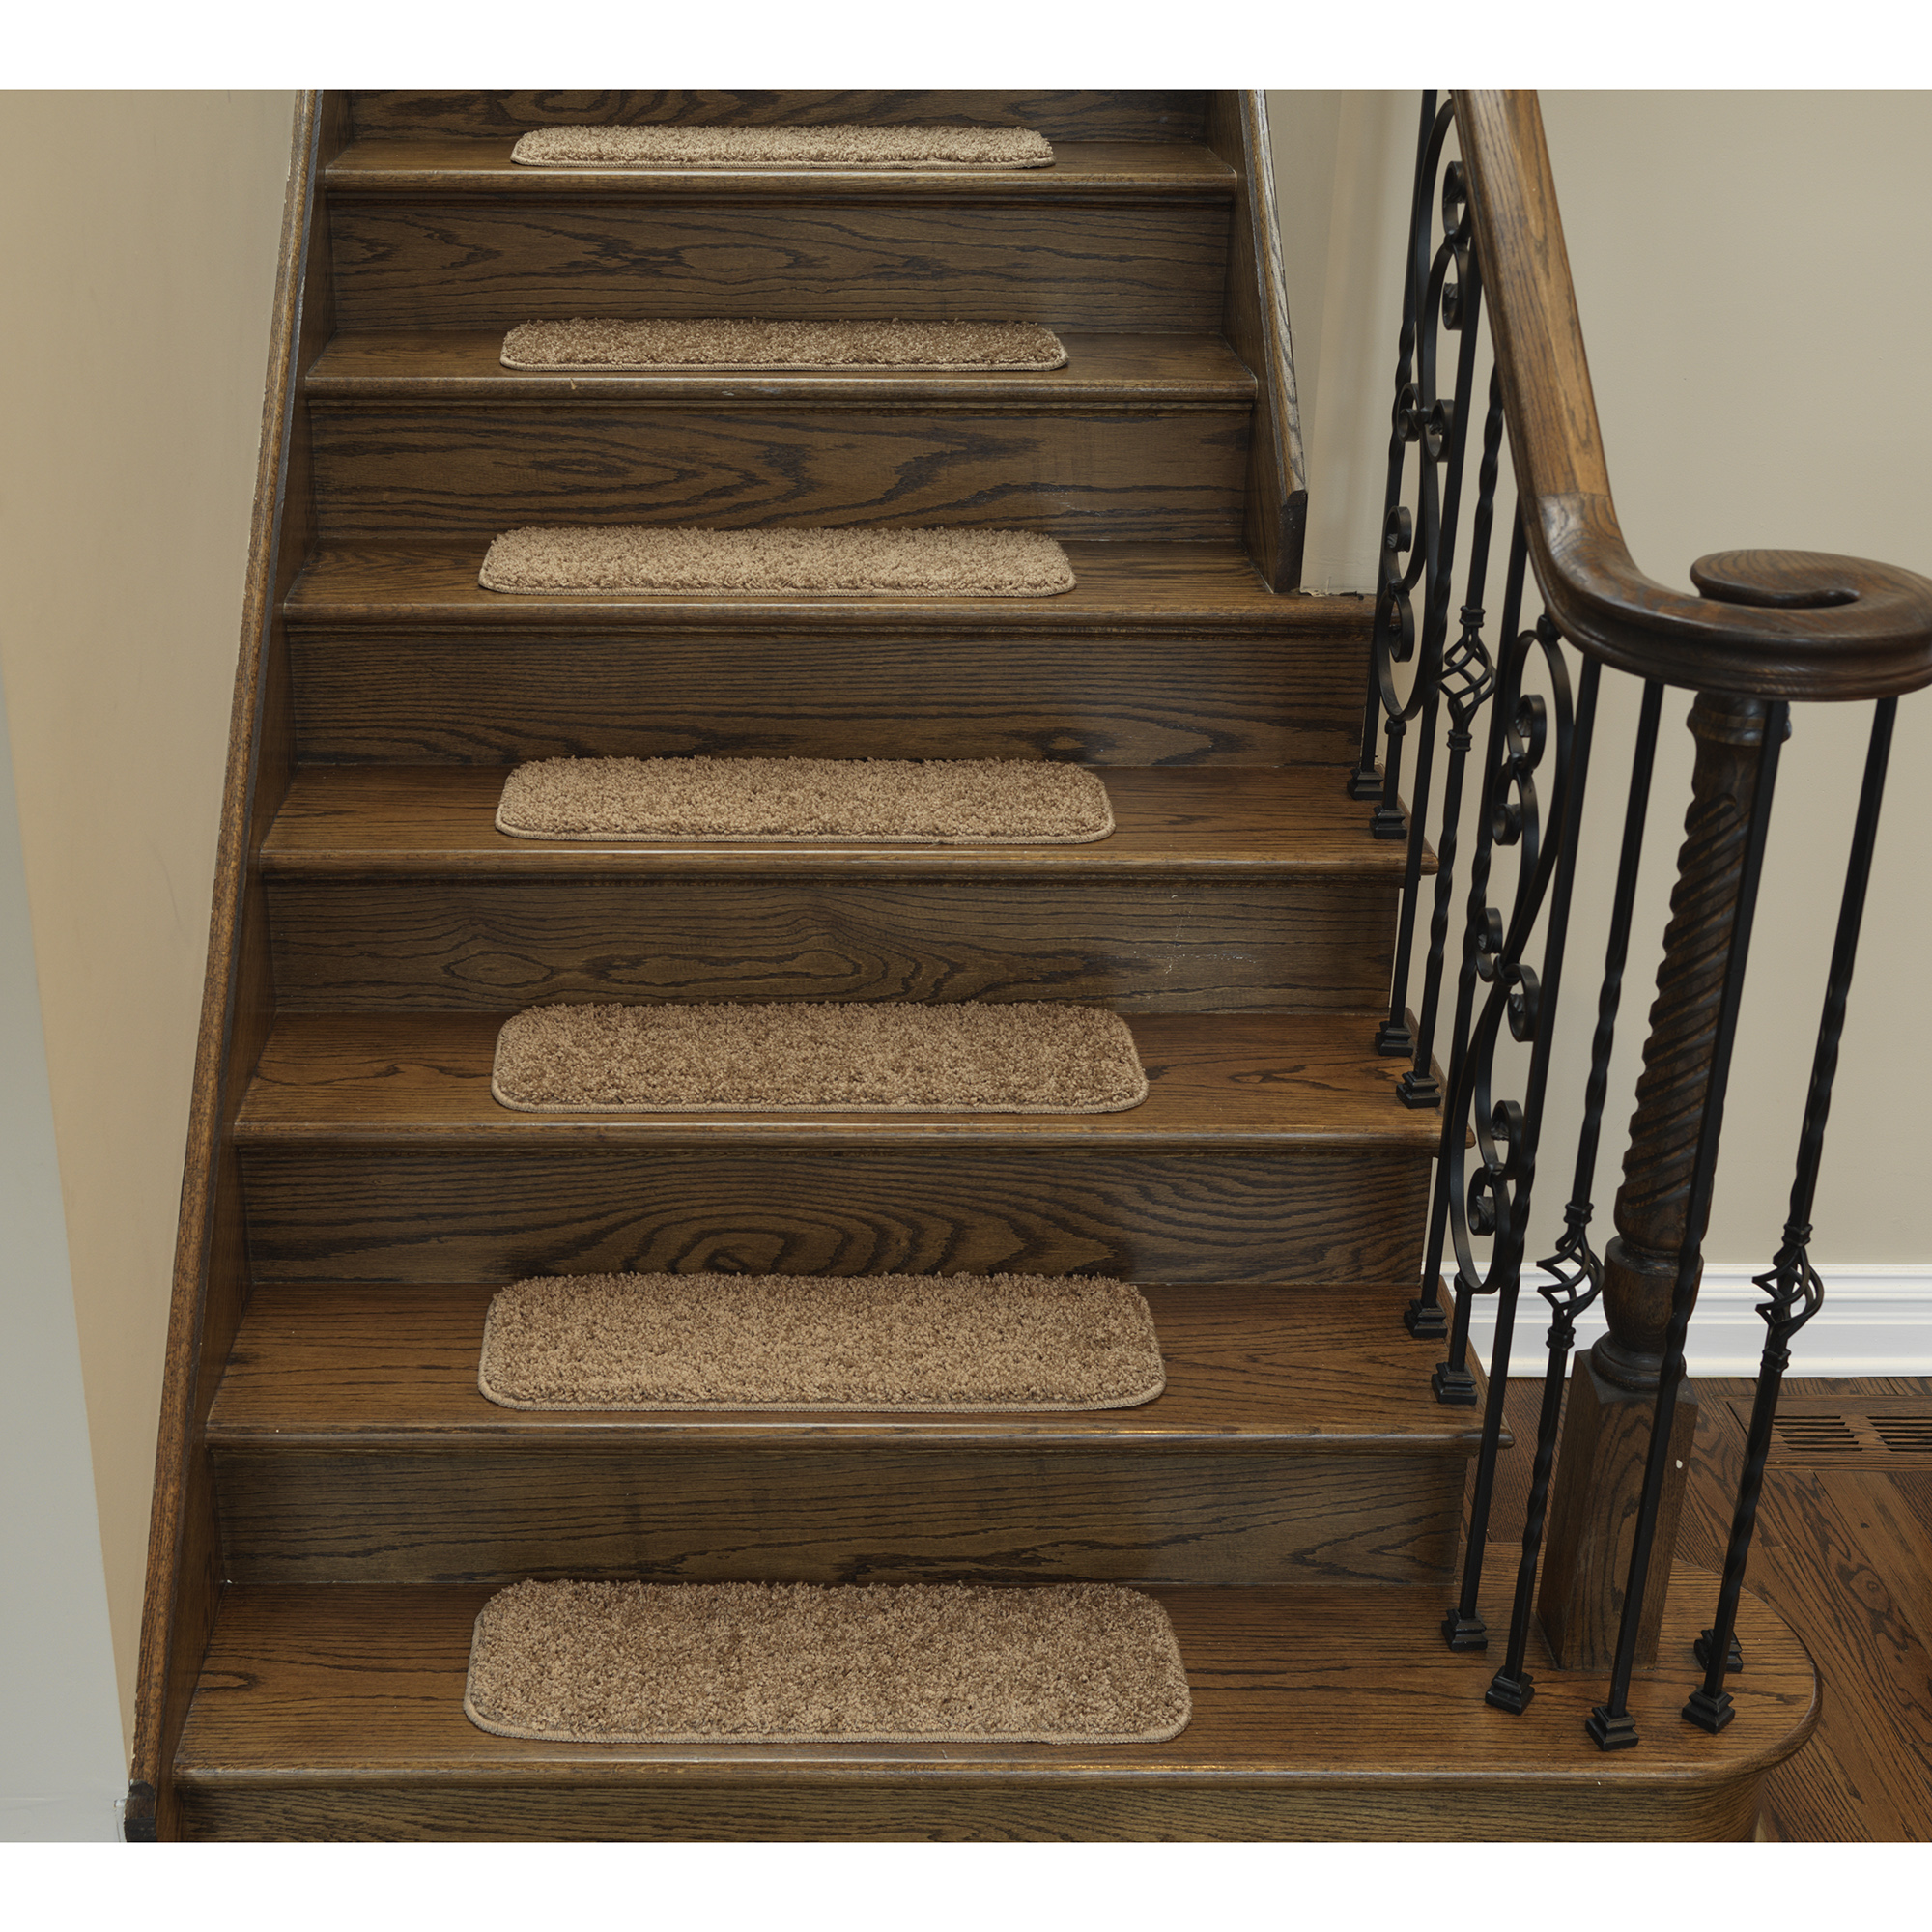 "Ottomanson Comfort Collection Soft Solid Non-Slip Plush Carpet Stair Treads, 5 Pack, 9"" x 26'"